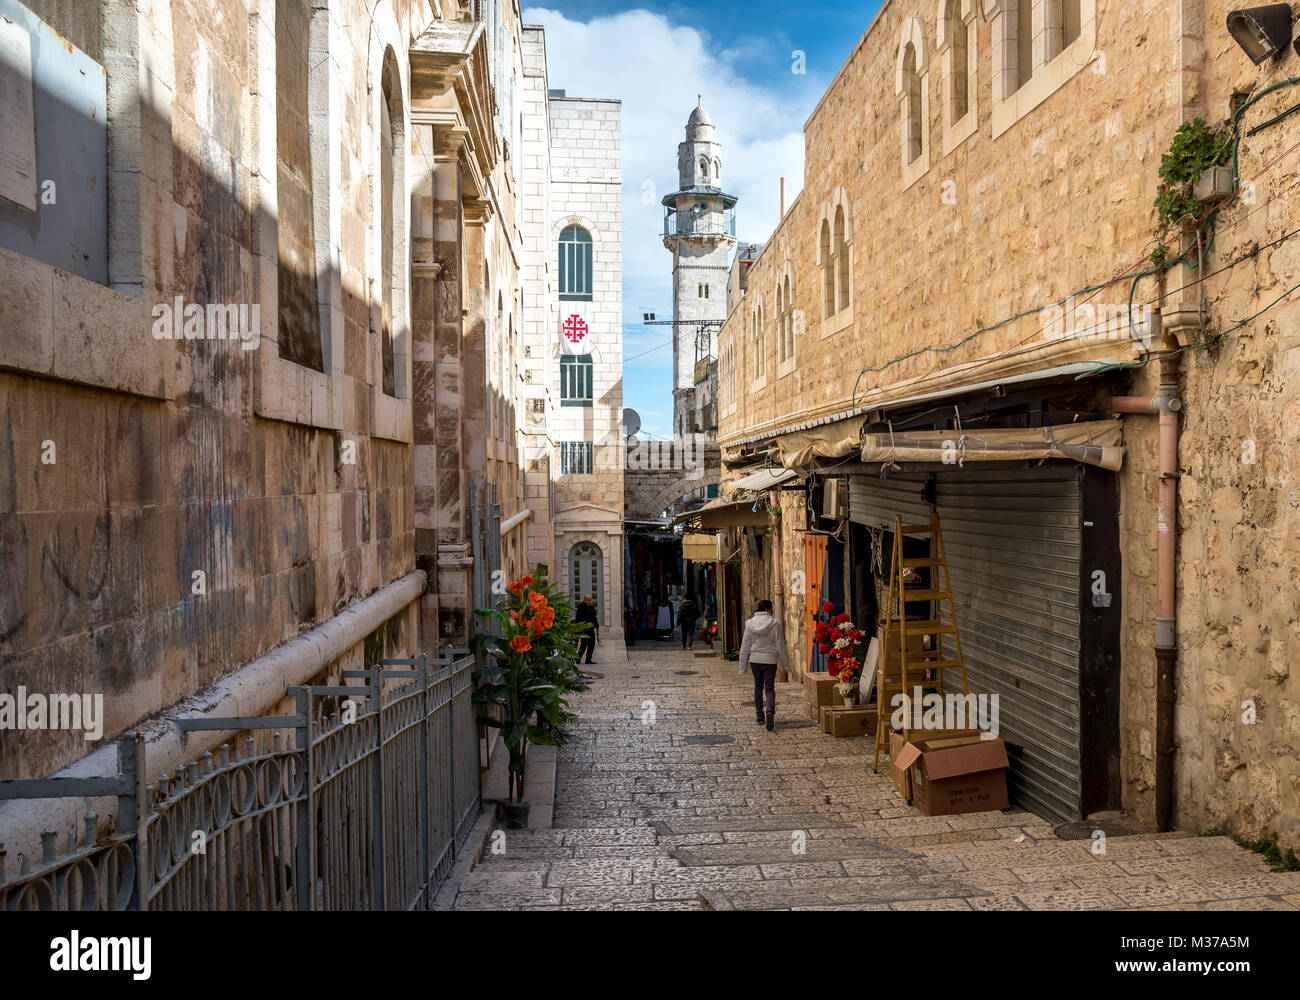 Narrow street situated in Jerusalem / Al-Quds old town, Armenian christian quarter. Mosque in background,Israel. - Stock Image